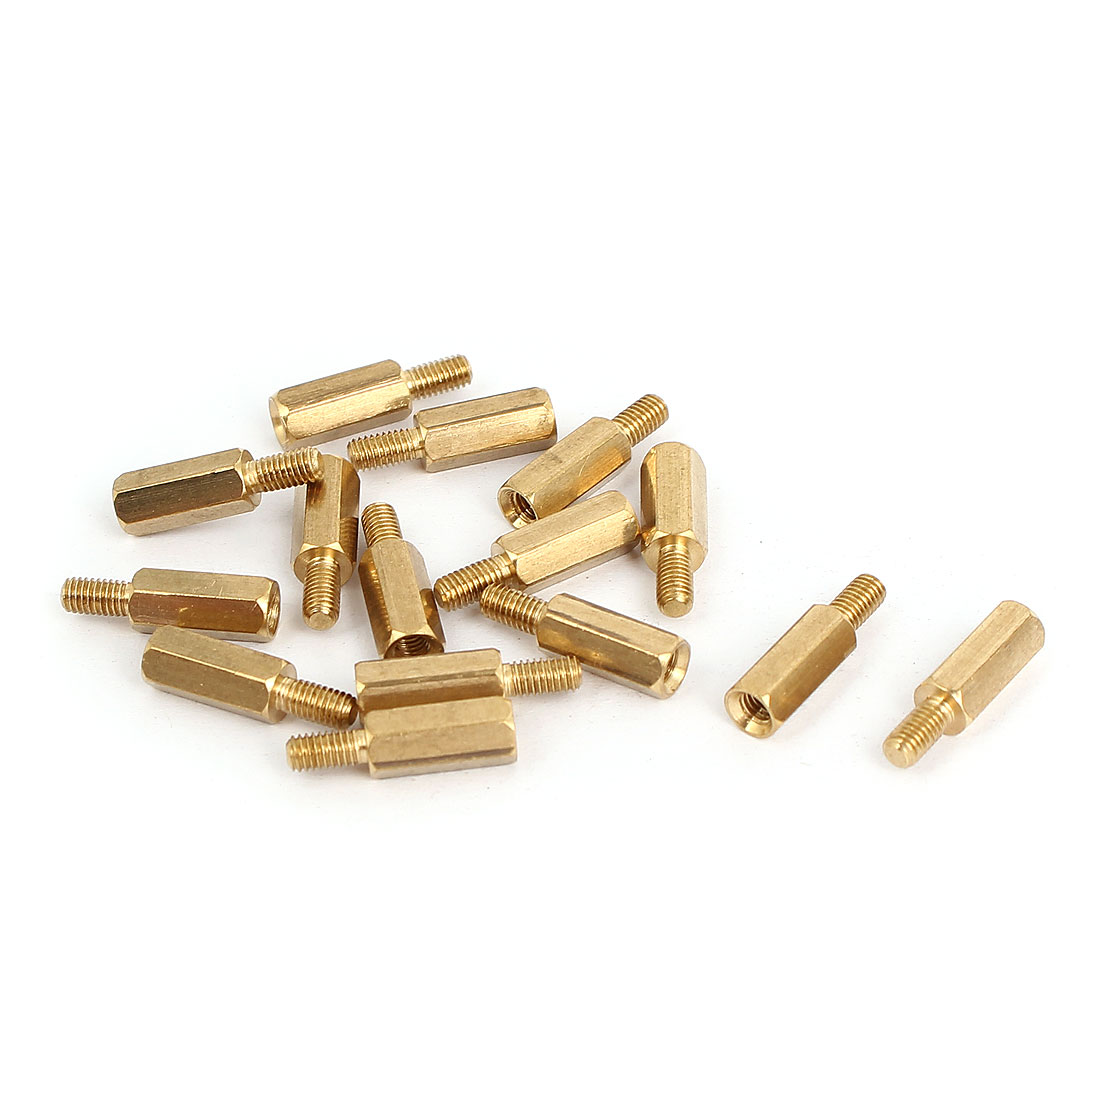 M3x11+6mm Male/Female Threaded Brass Hex Tapped Hexagonal Spacer Standoff Pillar 15pcs